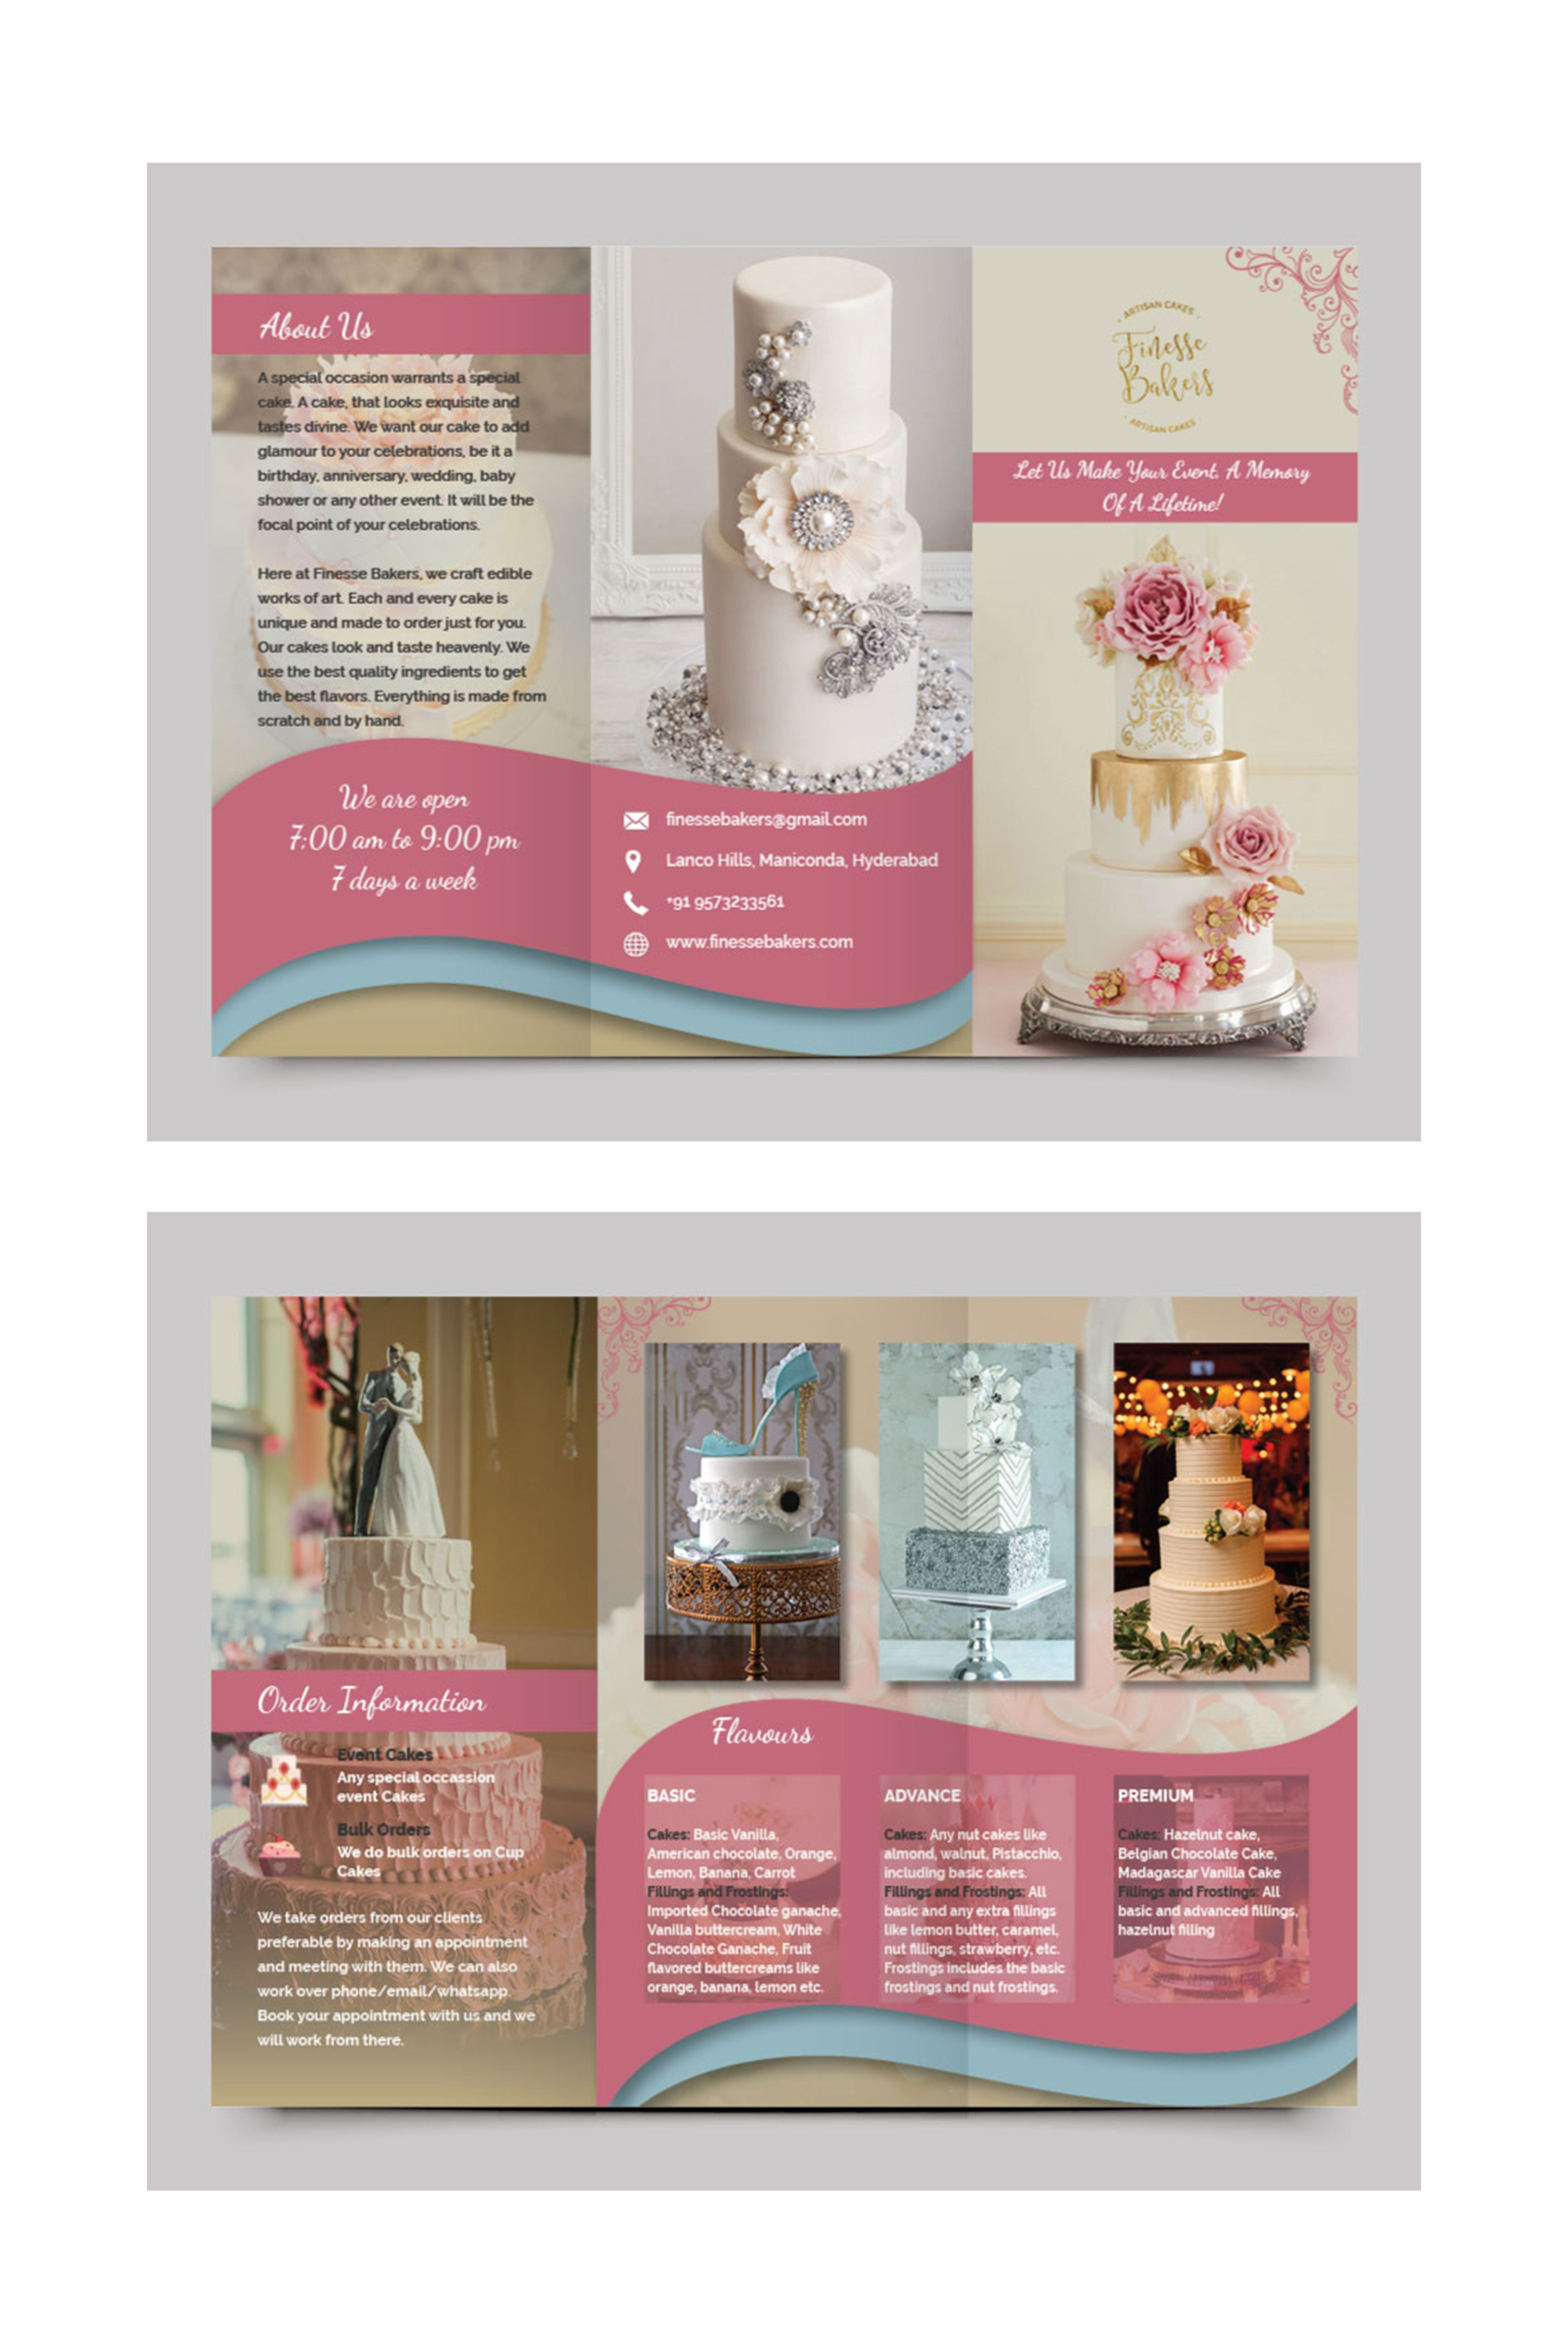 kitty creations brochure design contest entry for a cake business